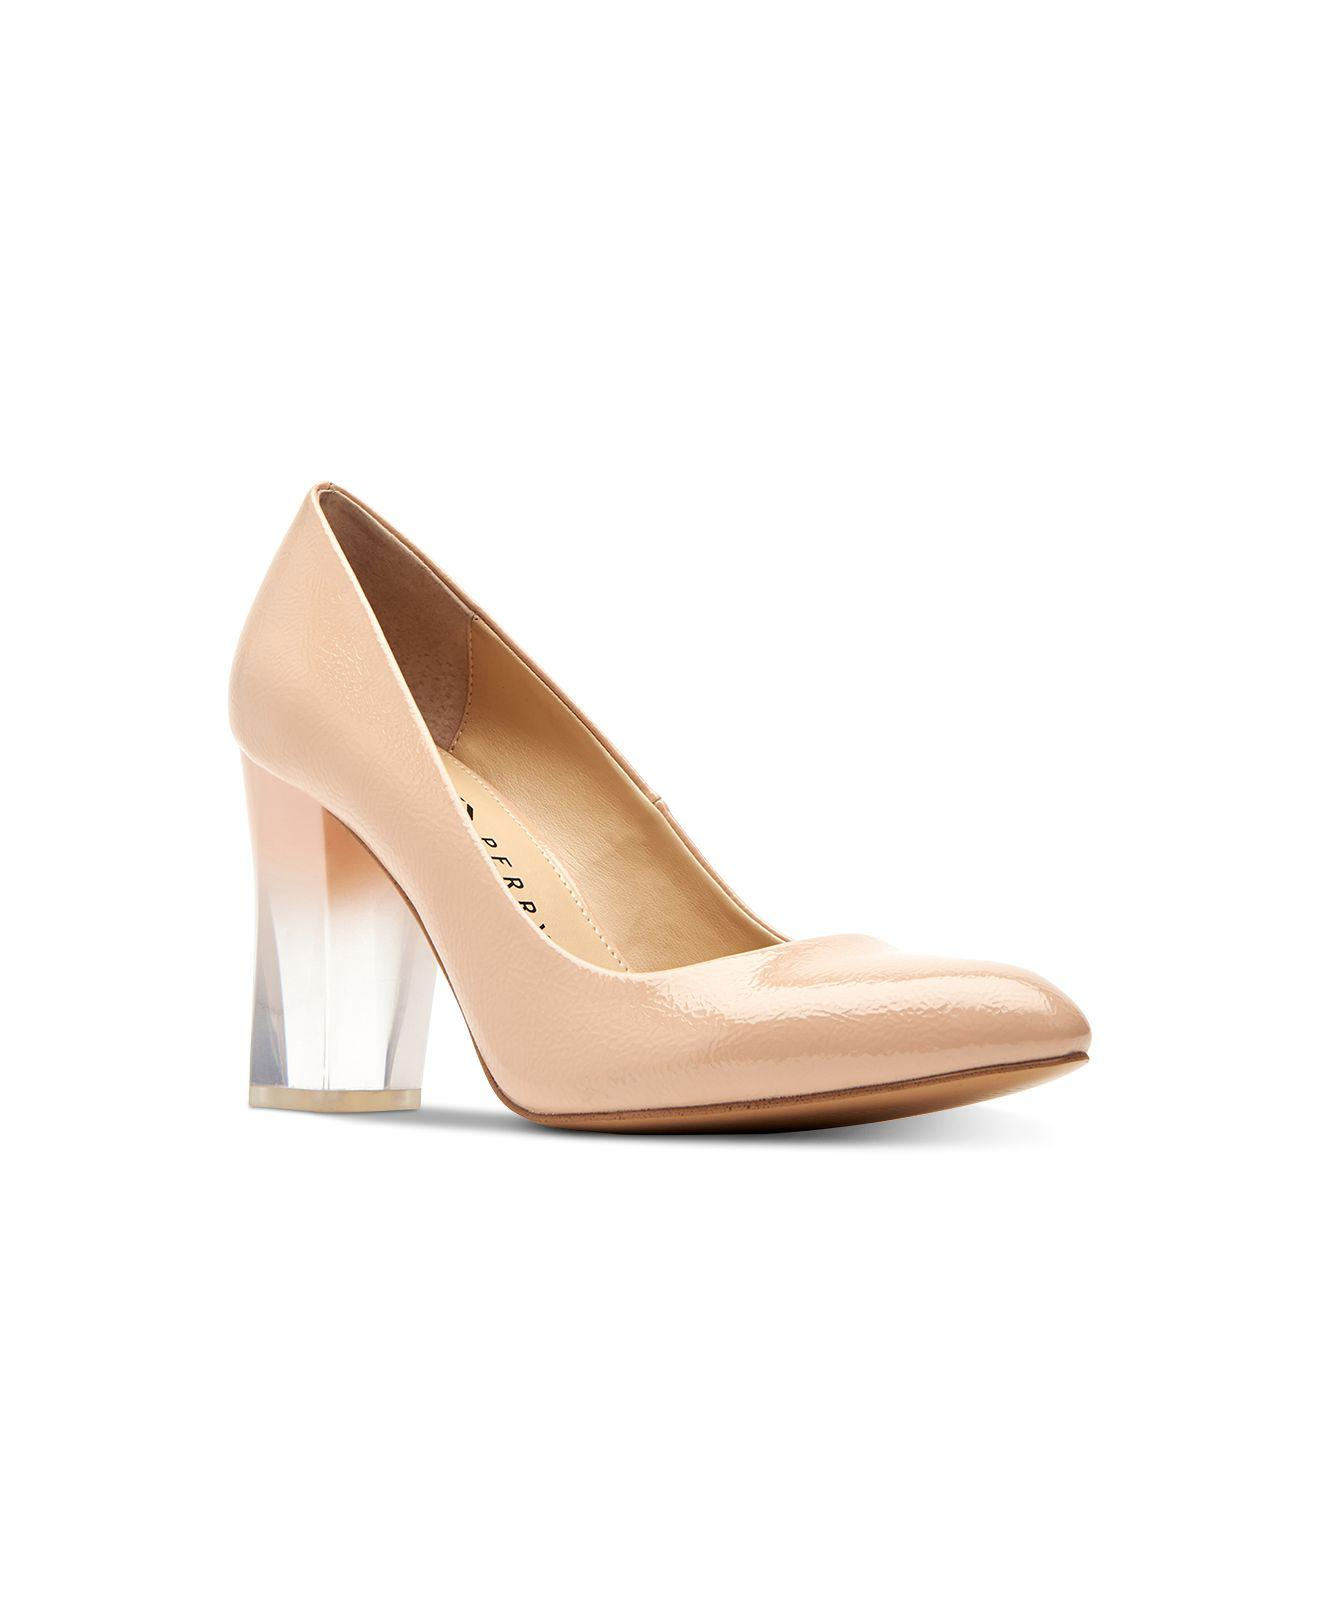 aa3756a0e1 Katy Perry The A.w. Ombré-lucite Pumps in Natural - Save 17% - Lyst